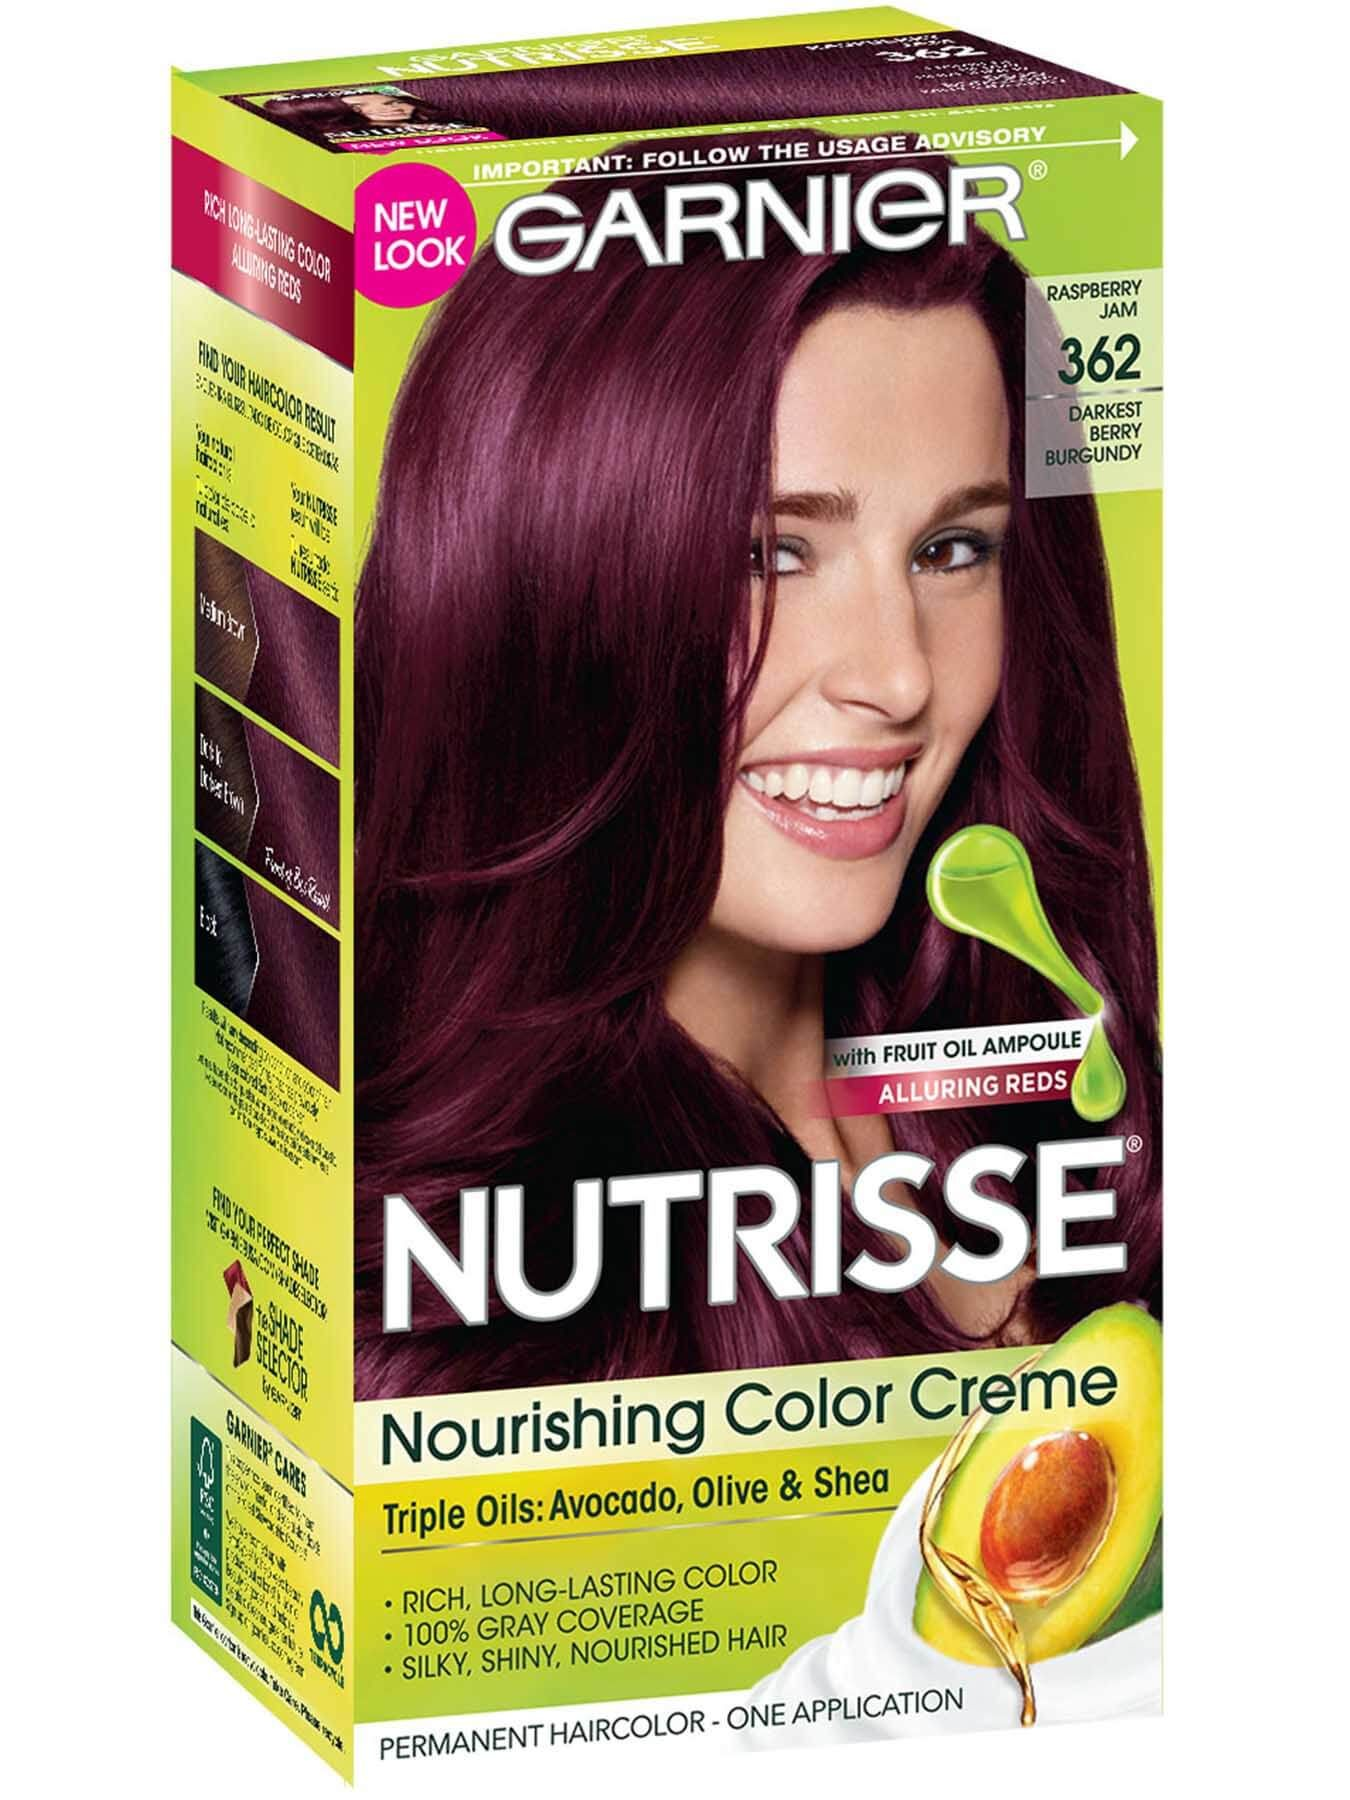 362 Darkest Berry Burgundy Hair Color Hair Color Burgundy